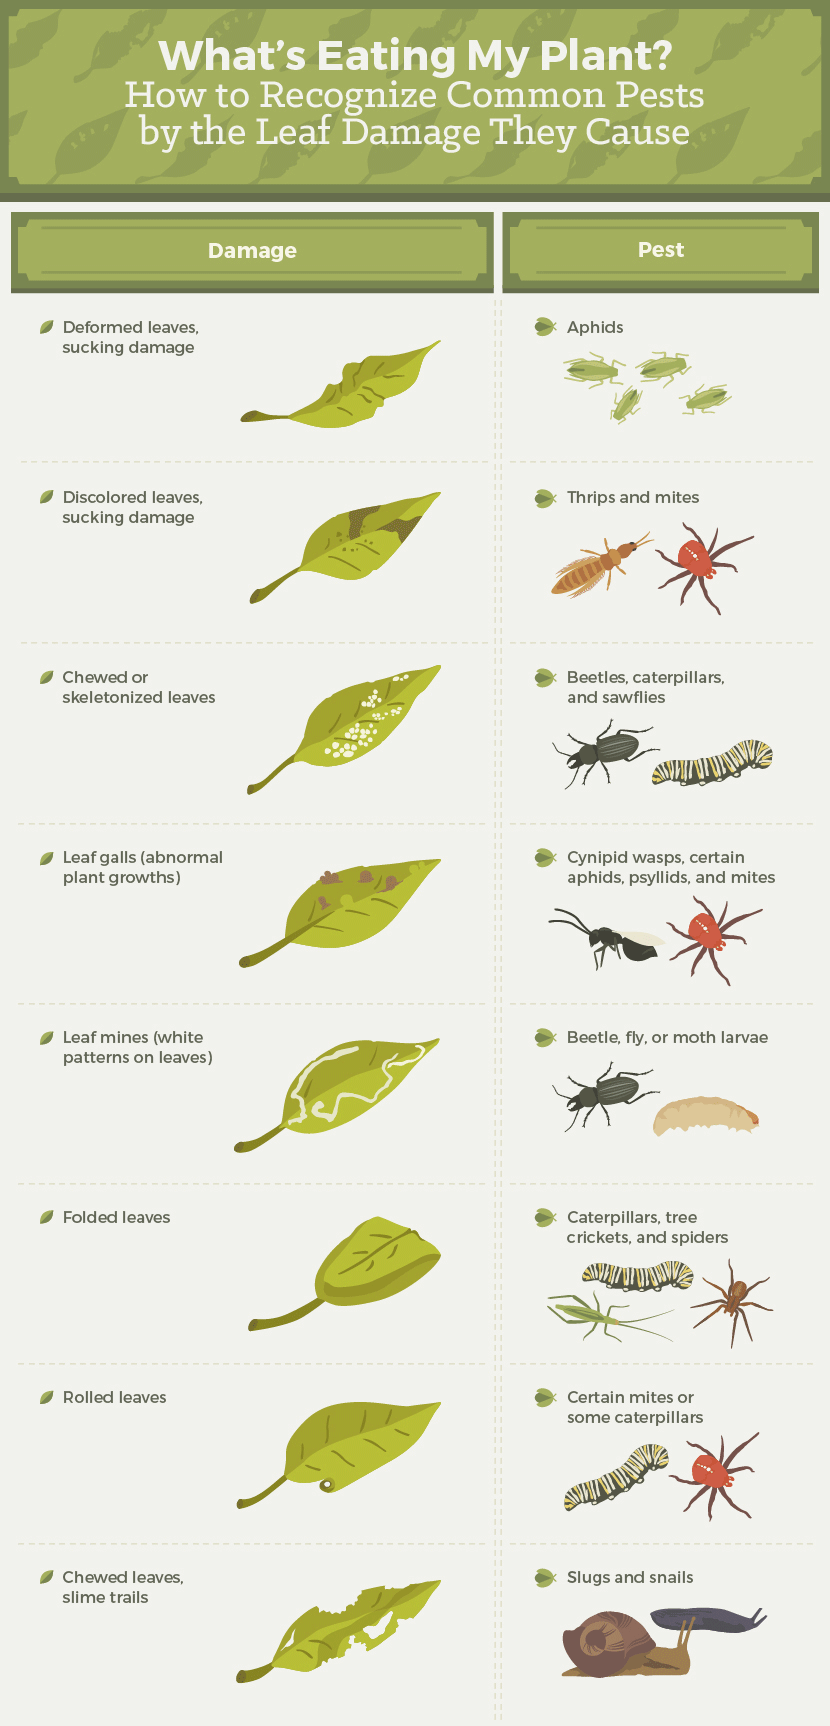 How to Recognize Garden Pests by Leaf Damage